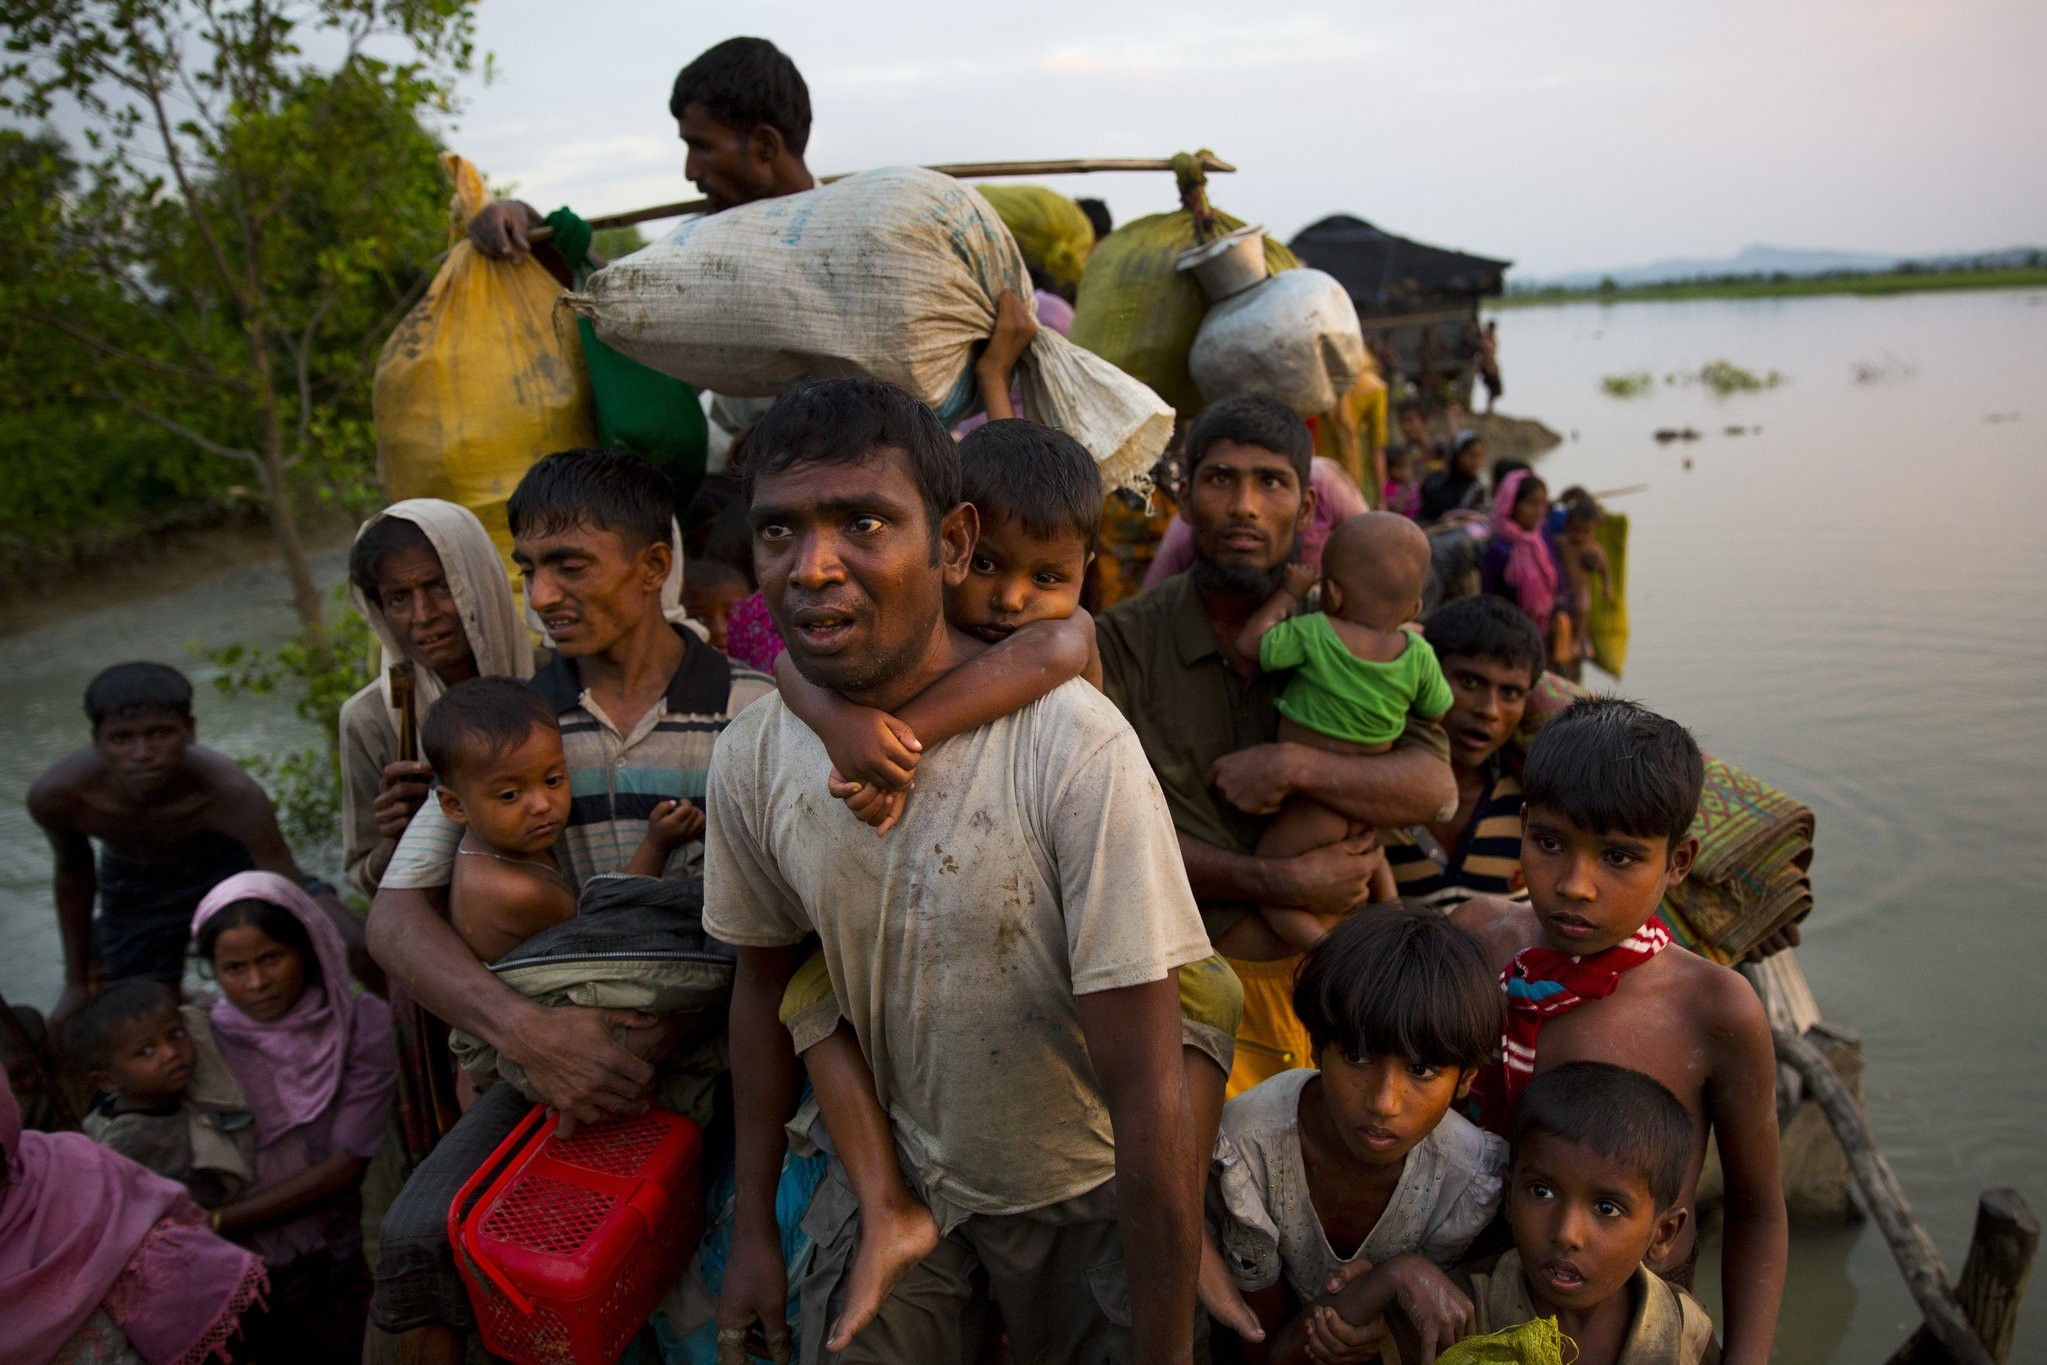 n this Nov. 1, 2017, file photo, Rohingya Muslims carry their young children and belongings after crossing the border from Myanmar into Bangladesh, near Palong Khali, Bangladesh (AP Photo)